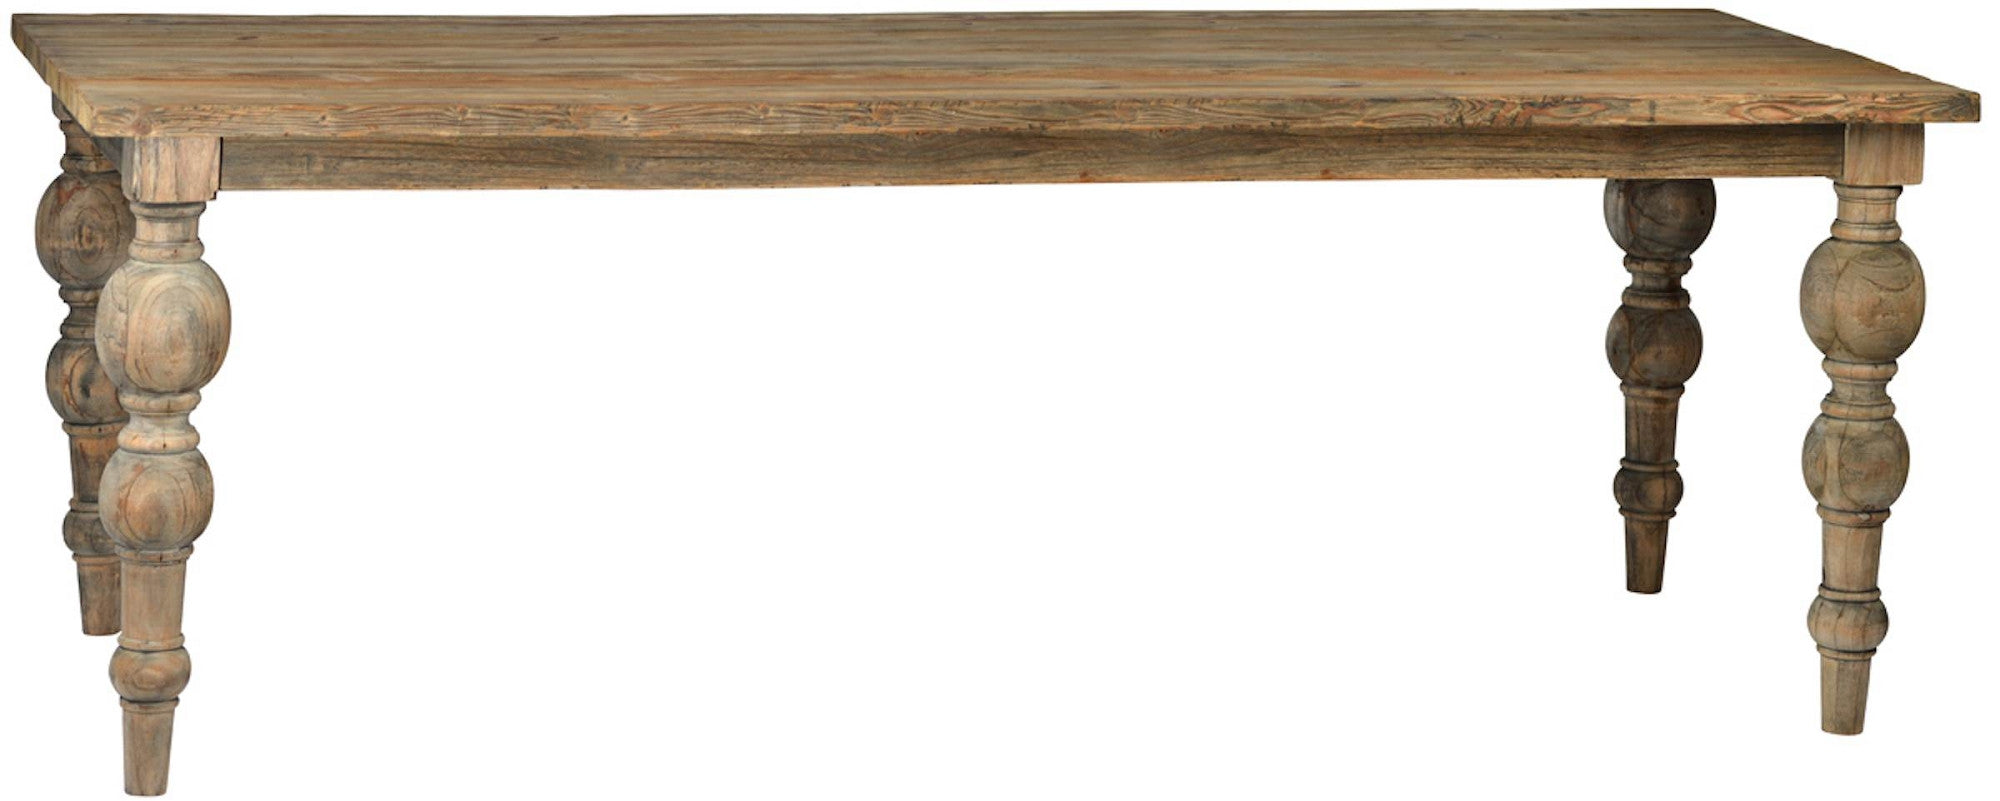 Savannah Reclaimed Wood Dining Table Mortise Amp Tenon